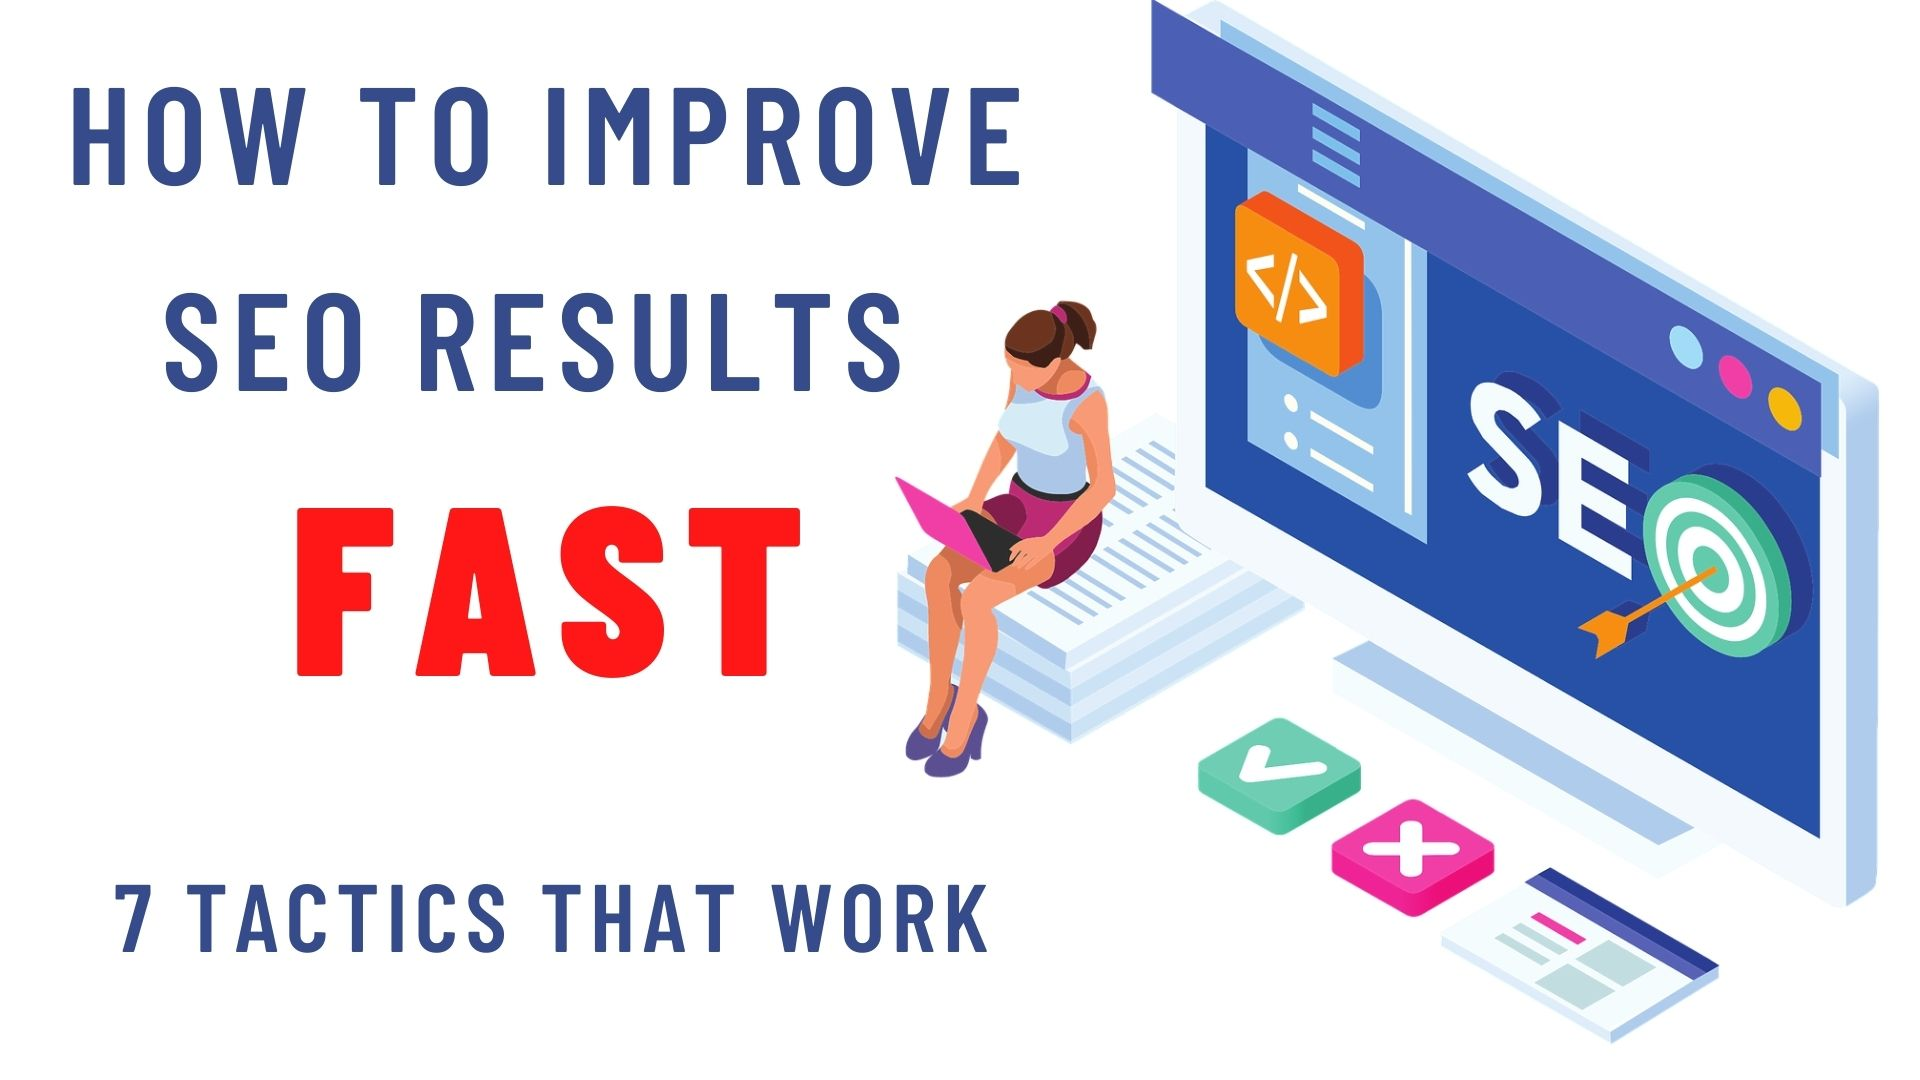 How To Improve SEO Results Fast - 7 Tactics That Work